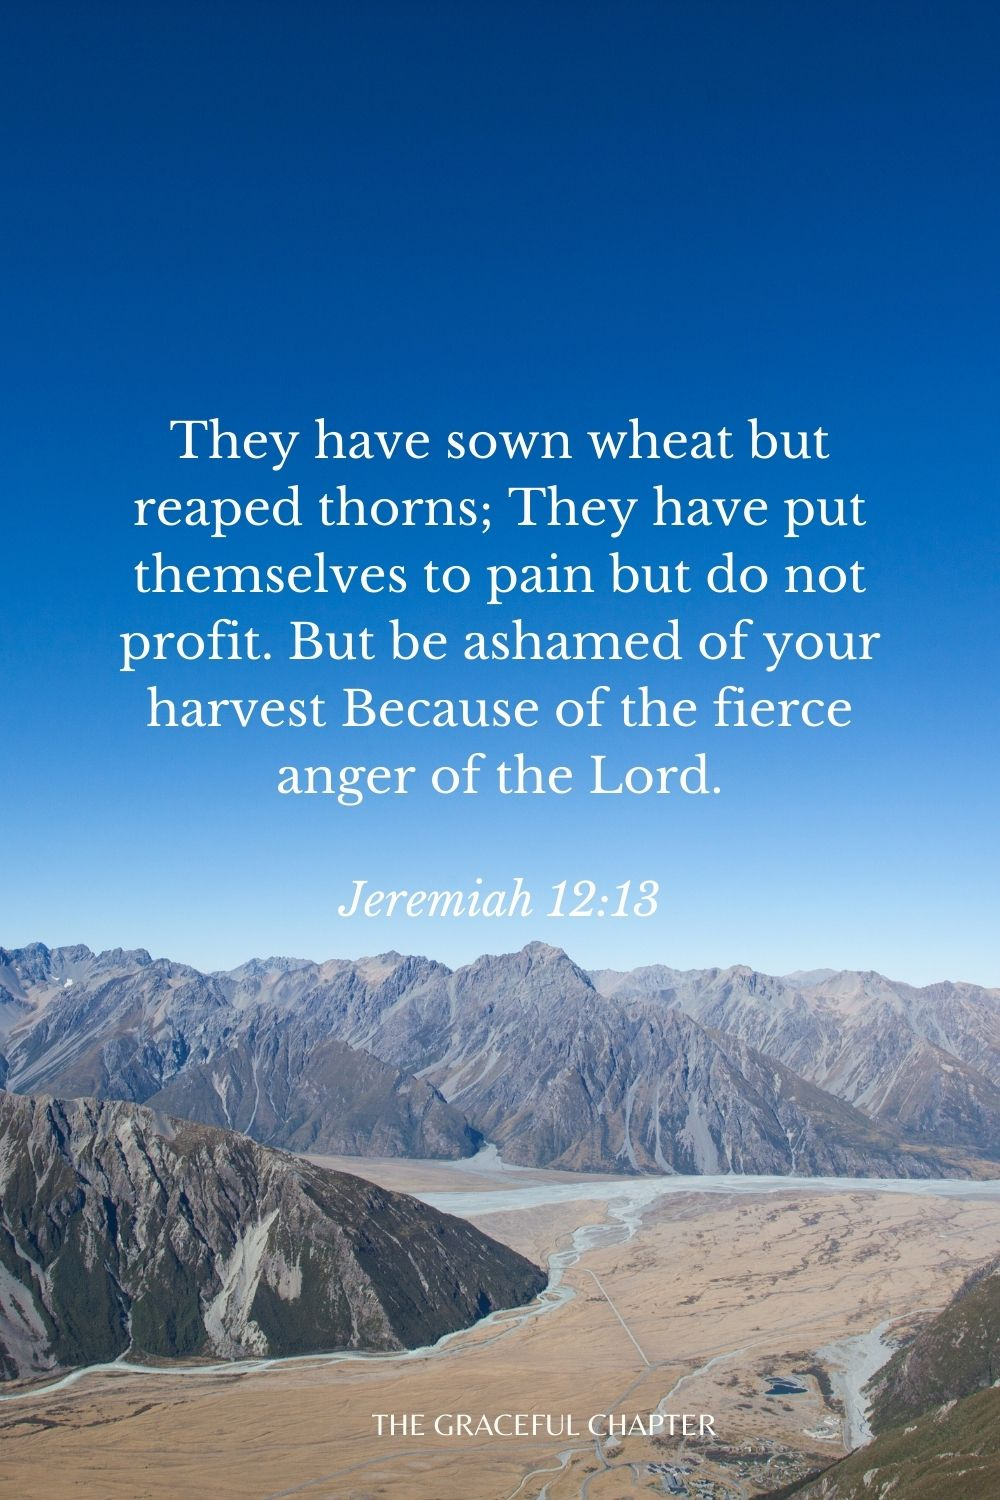 They have sown wheat but reaped thorns; They have put themselves to pain but do not profit. But be ashamed of your harvest Because of the fierce anger of the Lord. Jeremiah 12:13